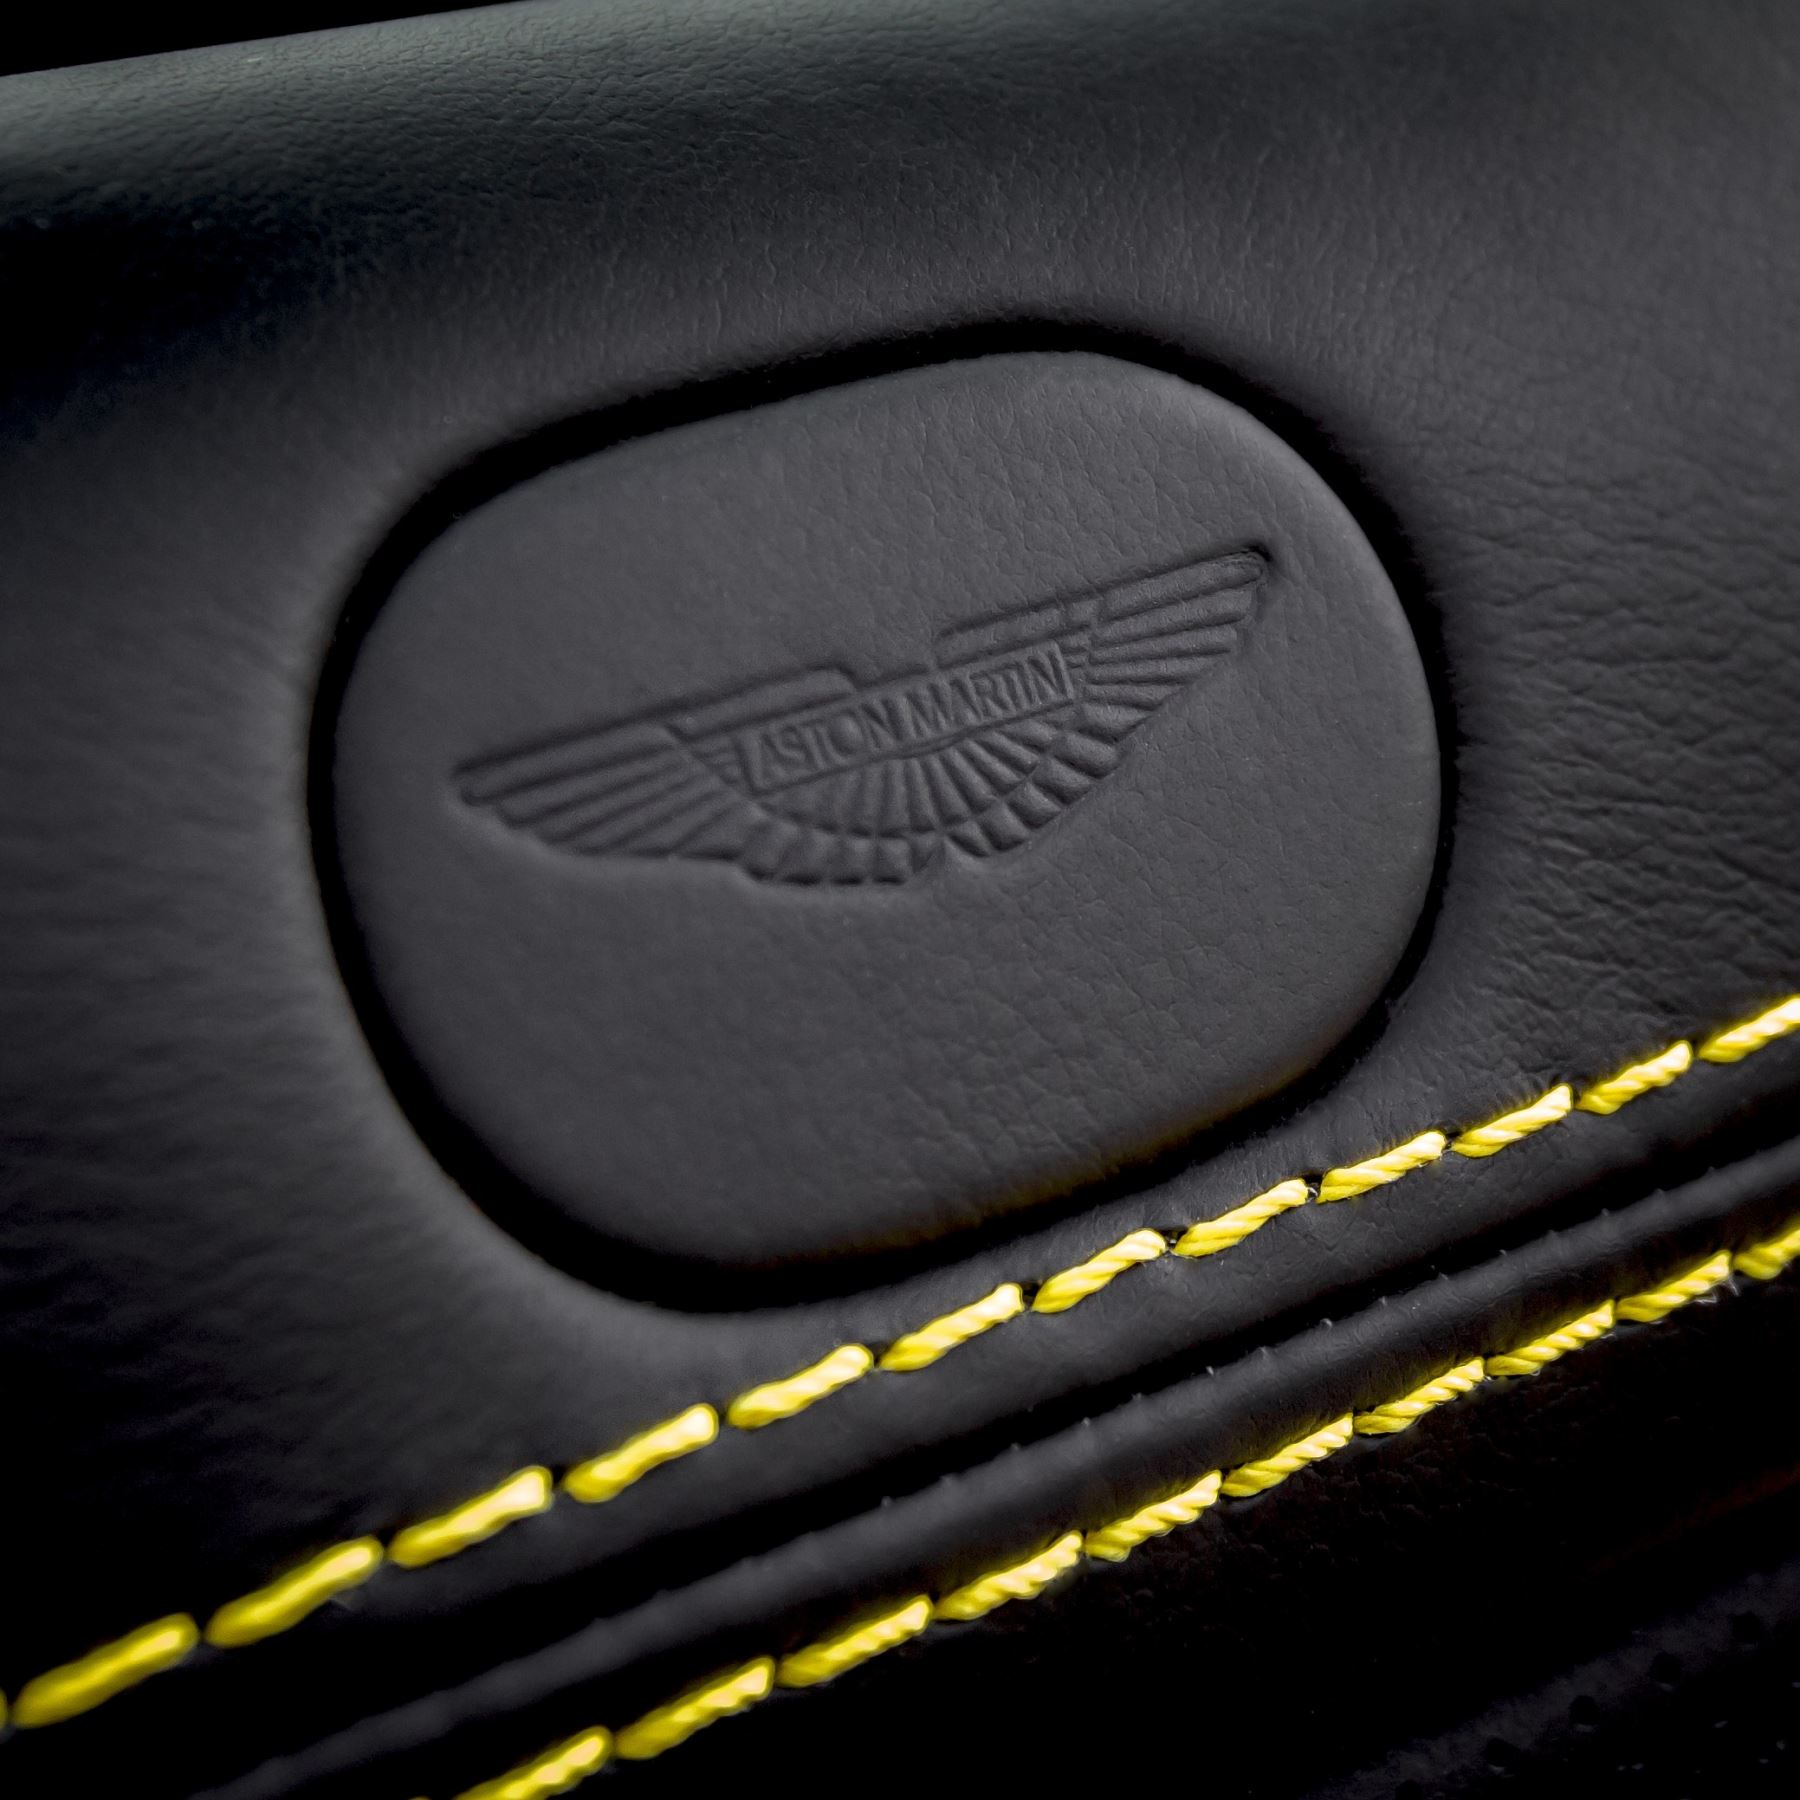 Aston Martin Vanquish V12 [595] S 2+2 2dr Touchtronic image 28